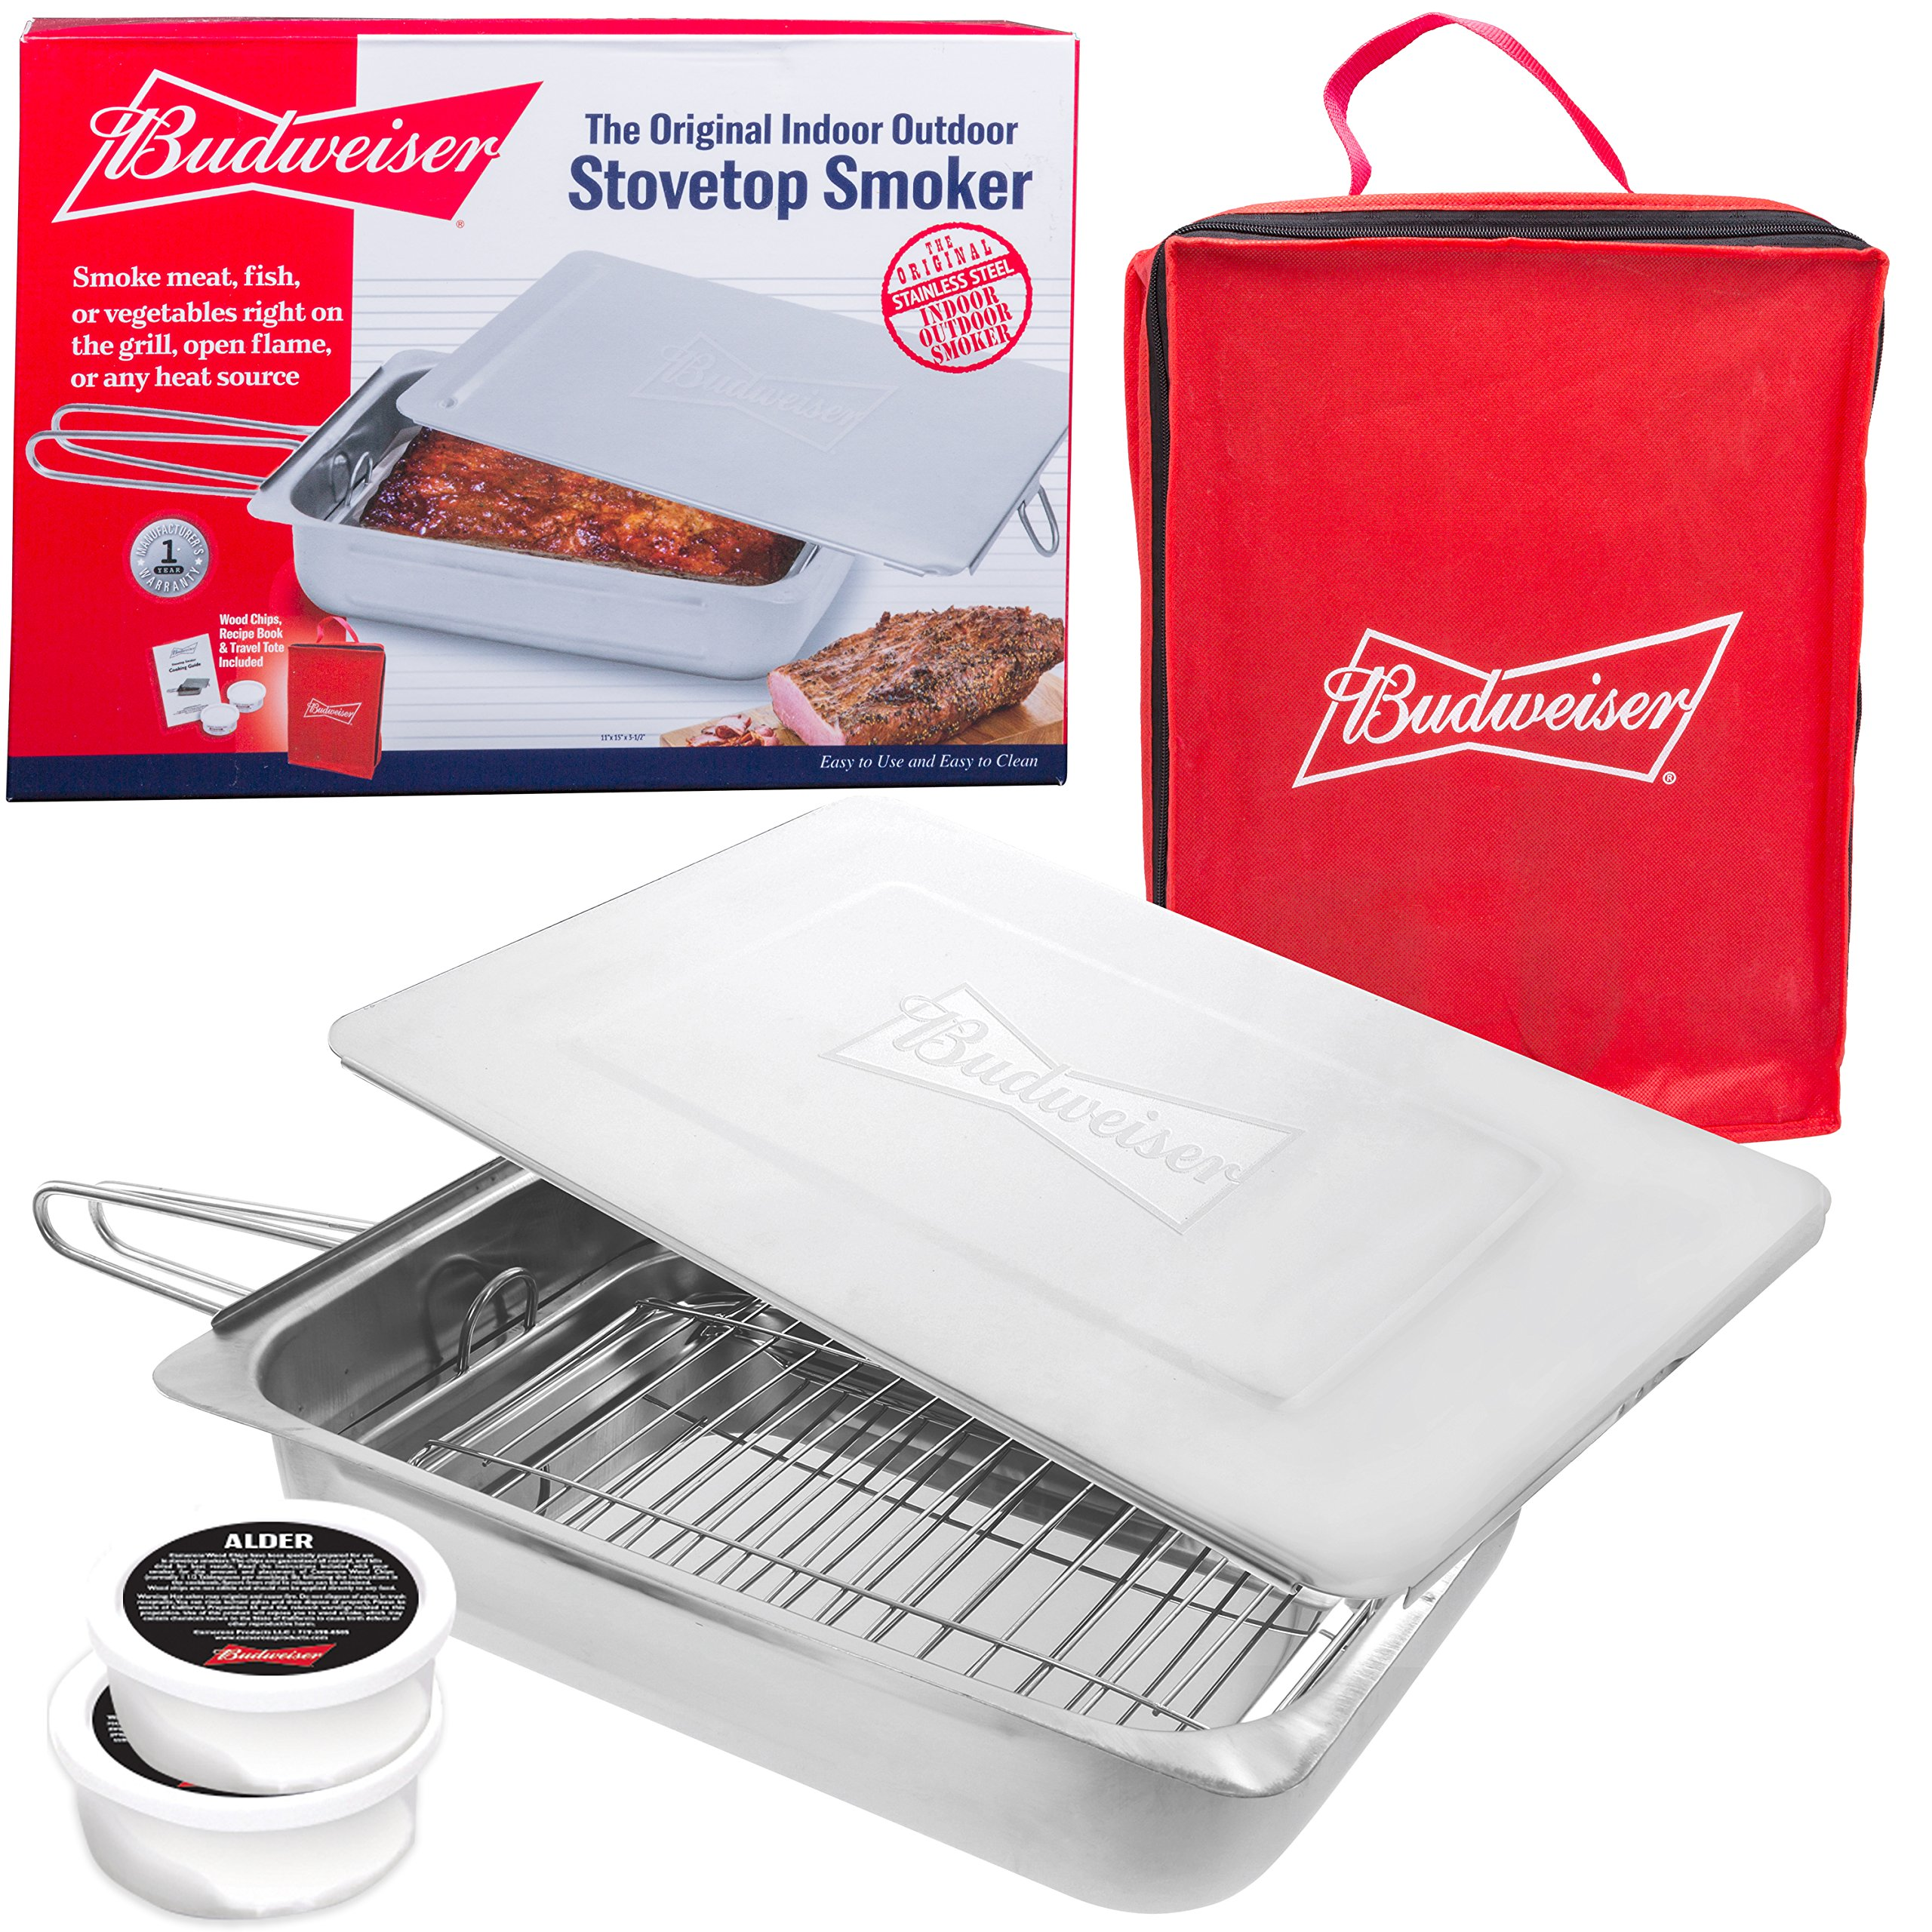 Budweiser Stovetop Smoker - The Original Stainless Steel Smoker with Wood Chips - Works over any heat source, indoor or outdoor by Budweiser